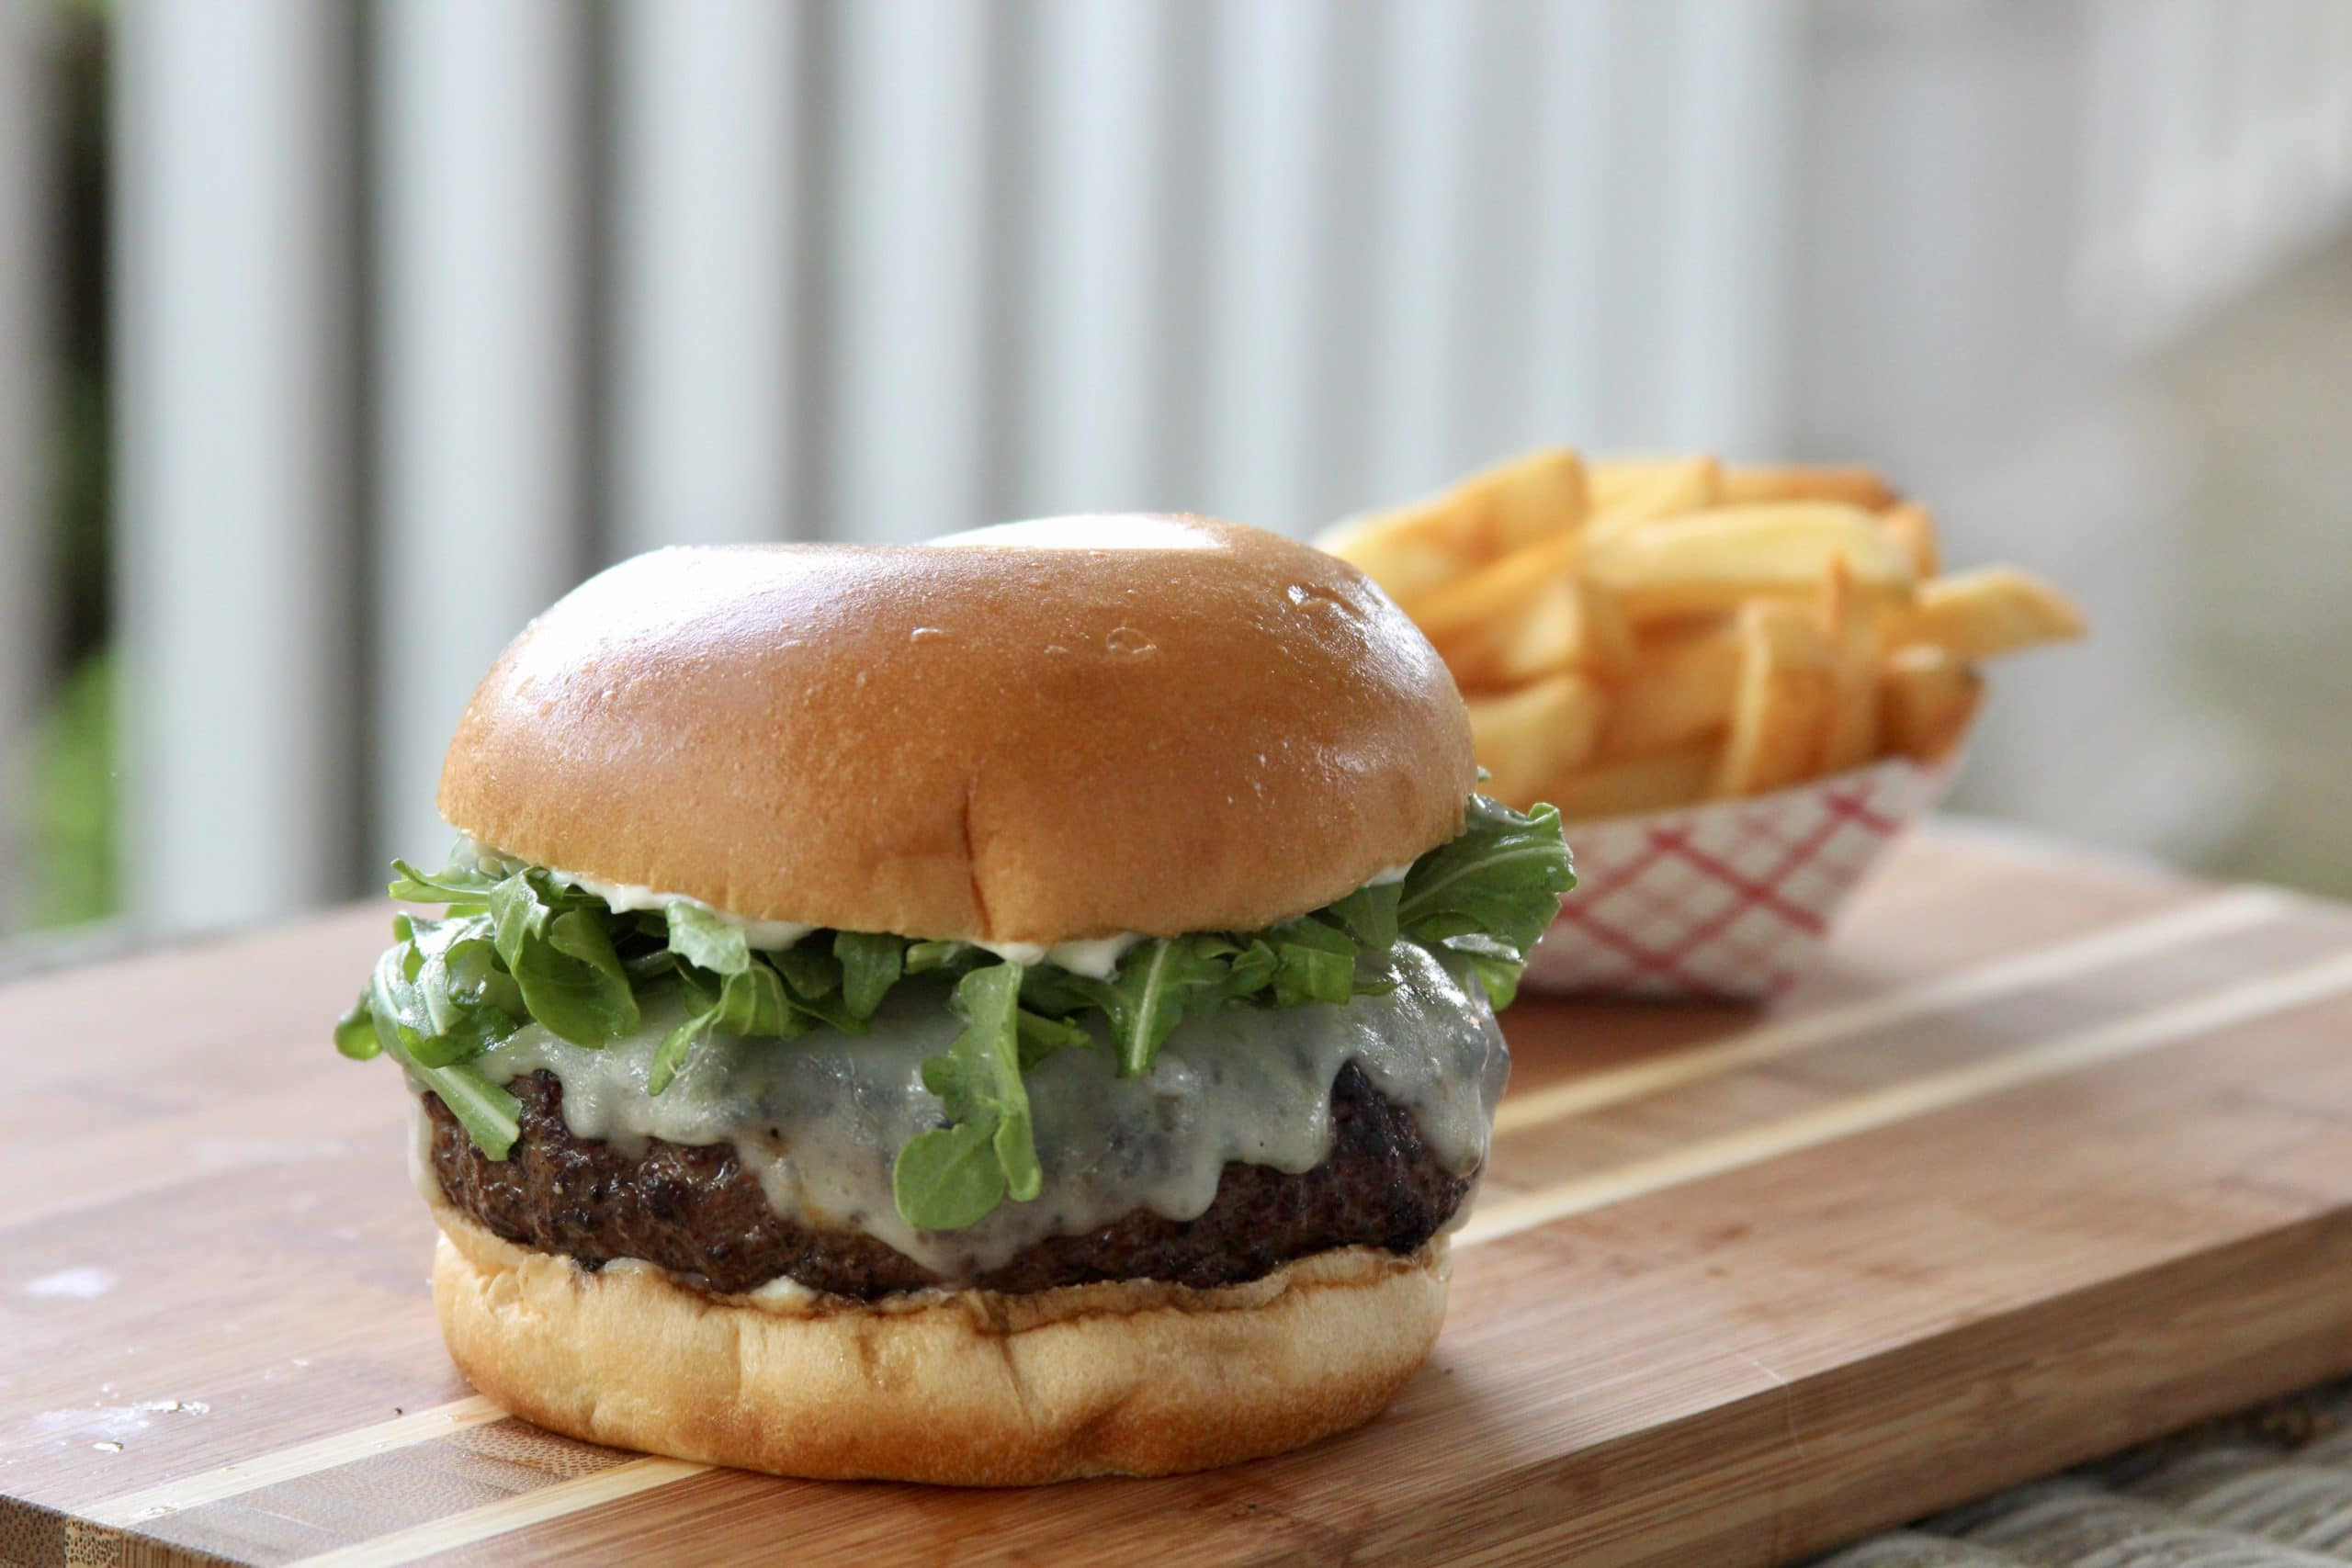 Kangaroo burger with a side of fries